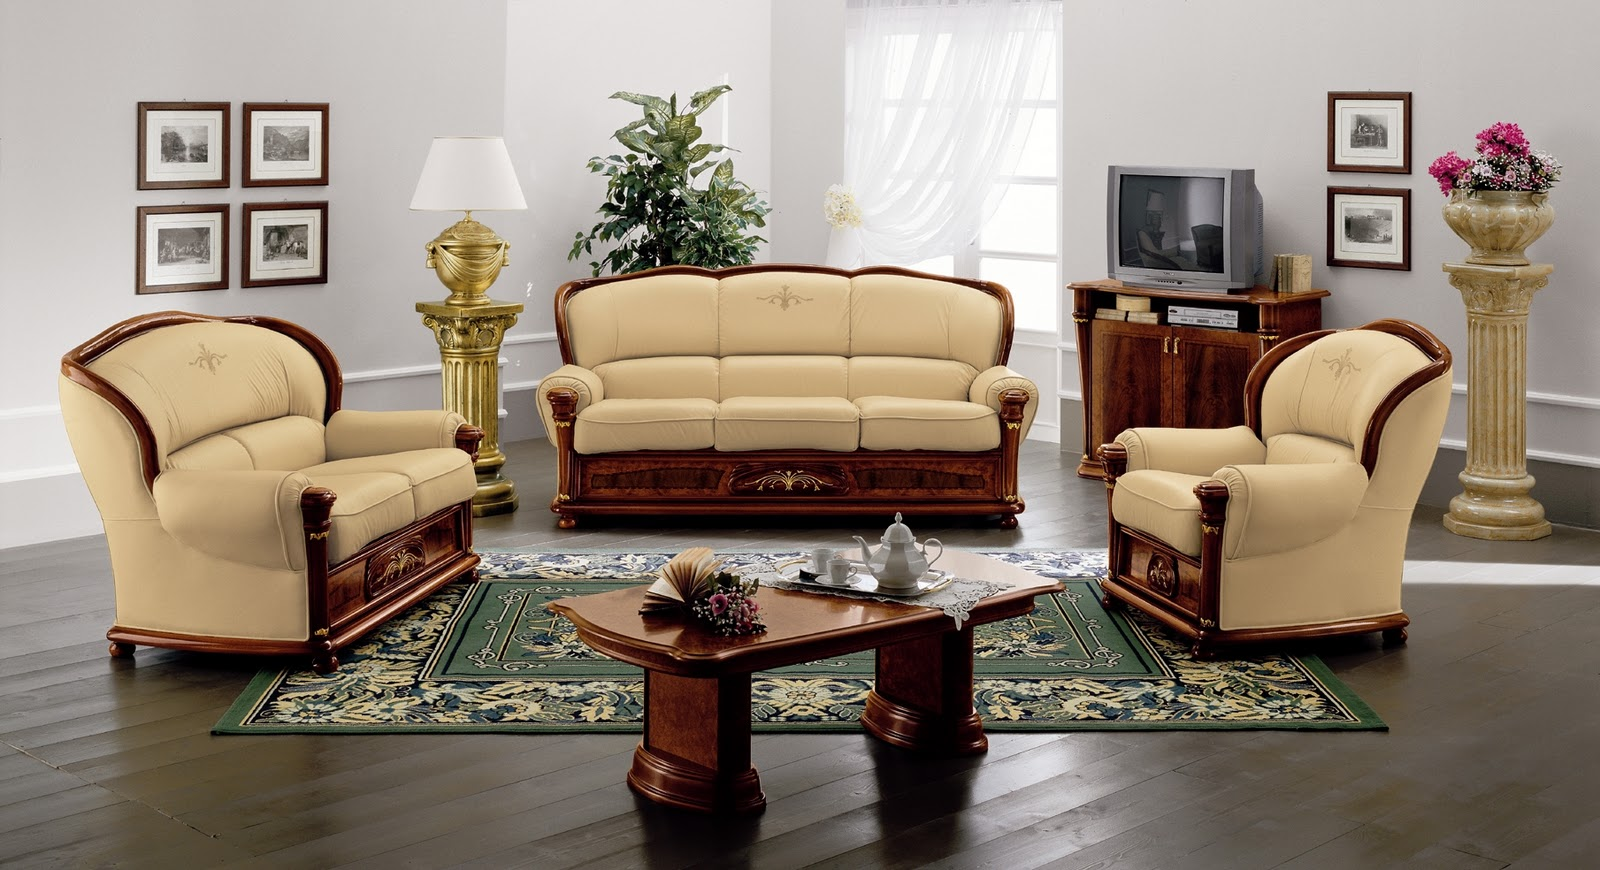 Living room sofa design photos living room interior designs for Drawing room furniture designs